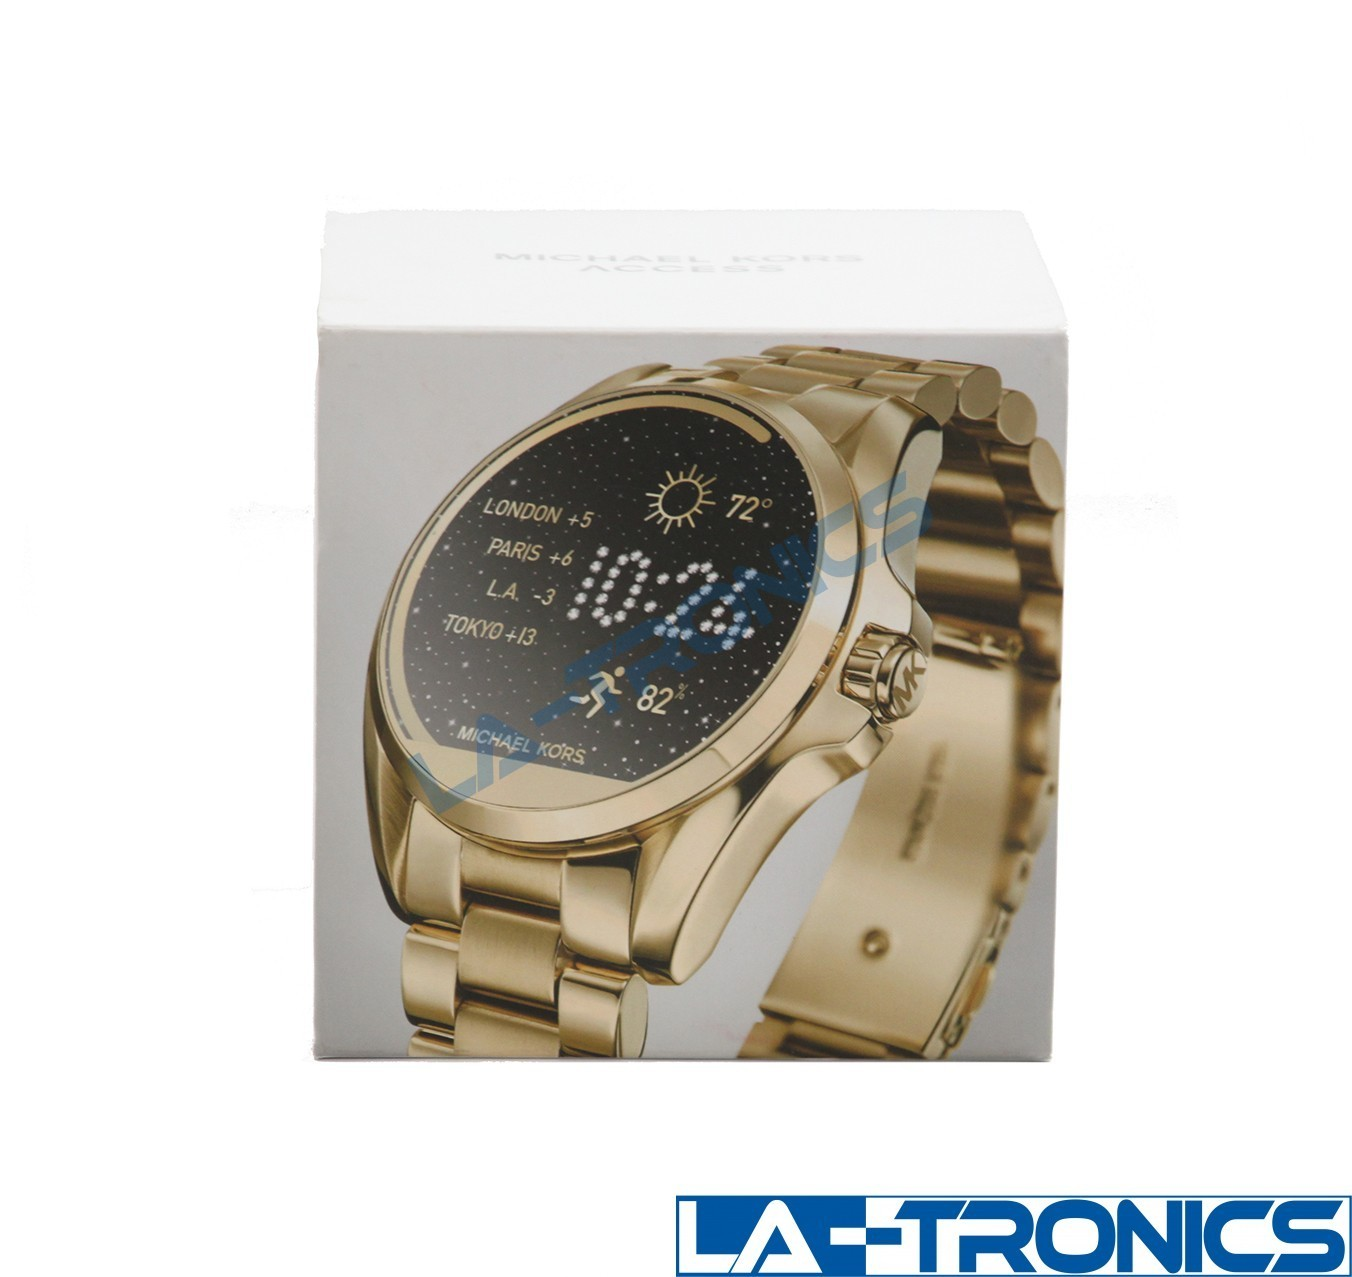 Michael Kors DW2c Access Bradshaw 44.5mm Stainless Steel Gold Smartwatch